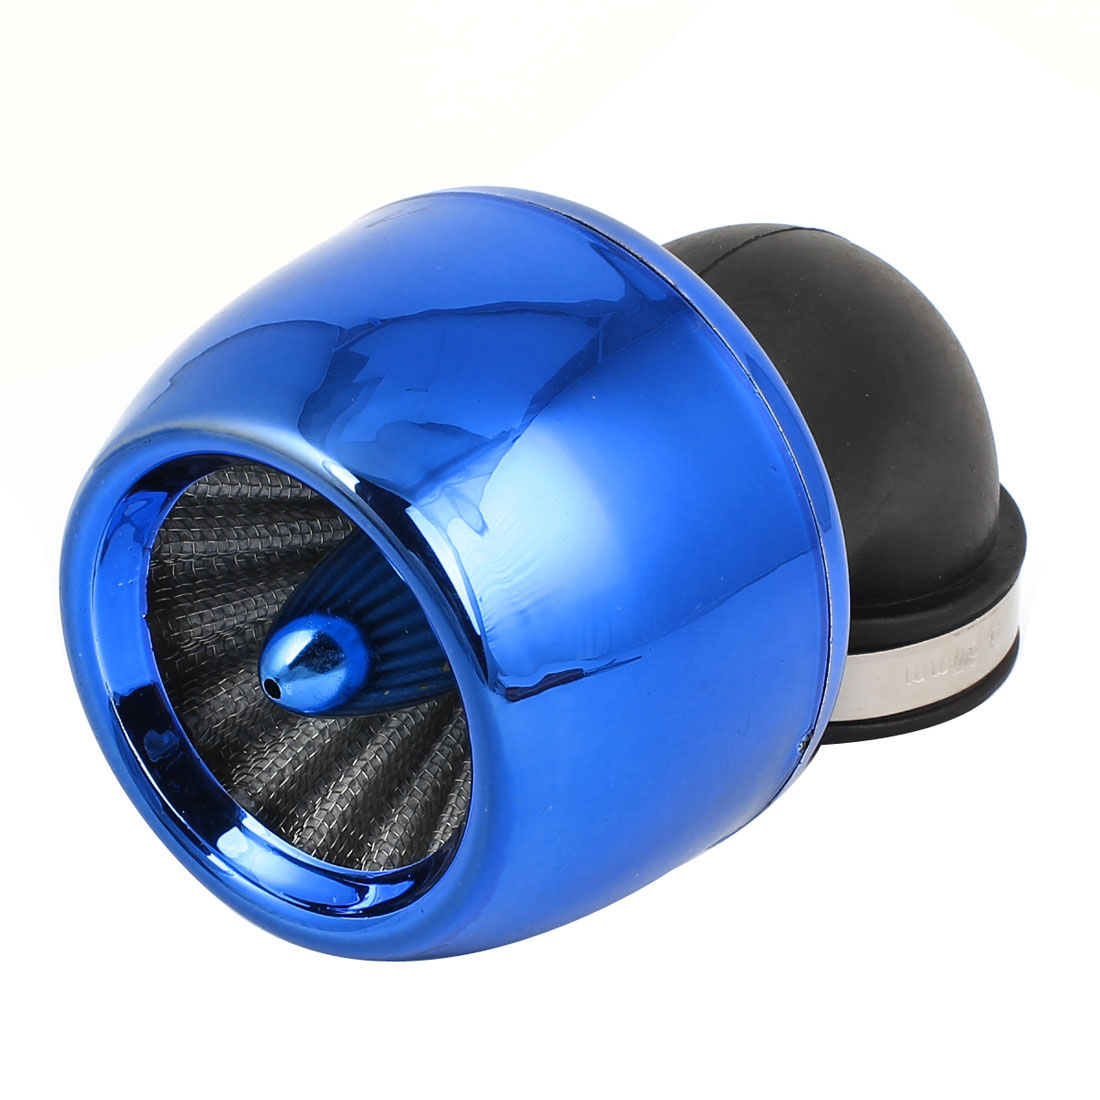 33-57mm Clamp Flange Motorcycle Blue Mesh Air Flow Filter